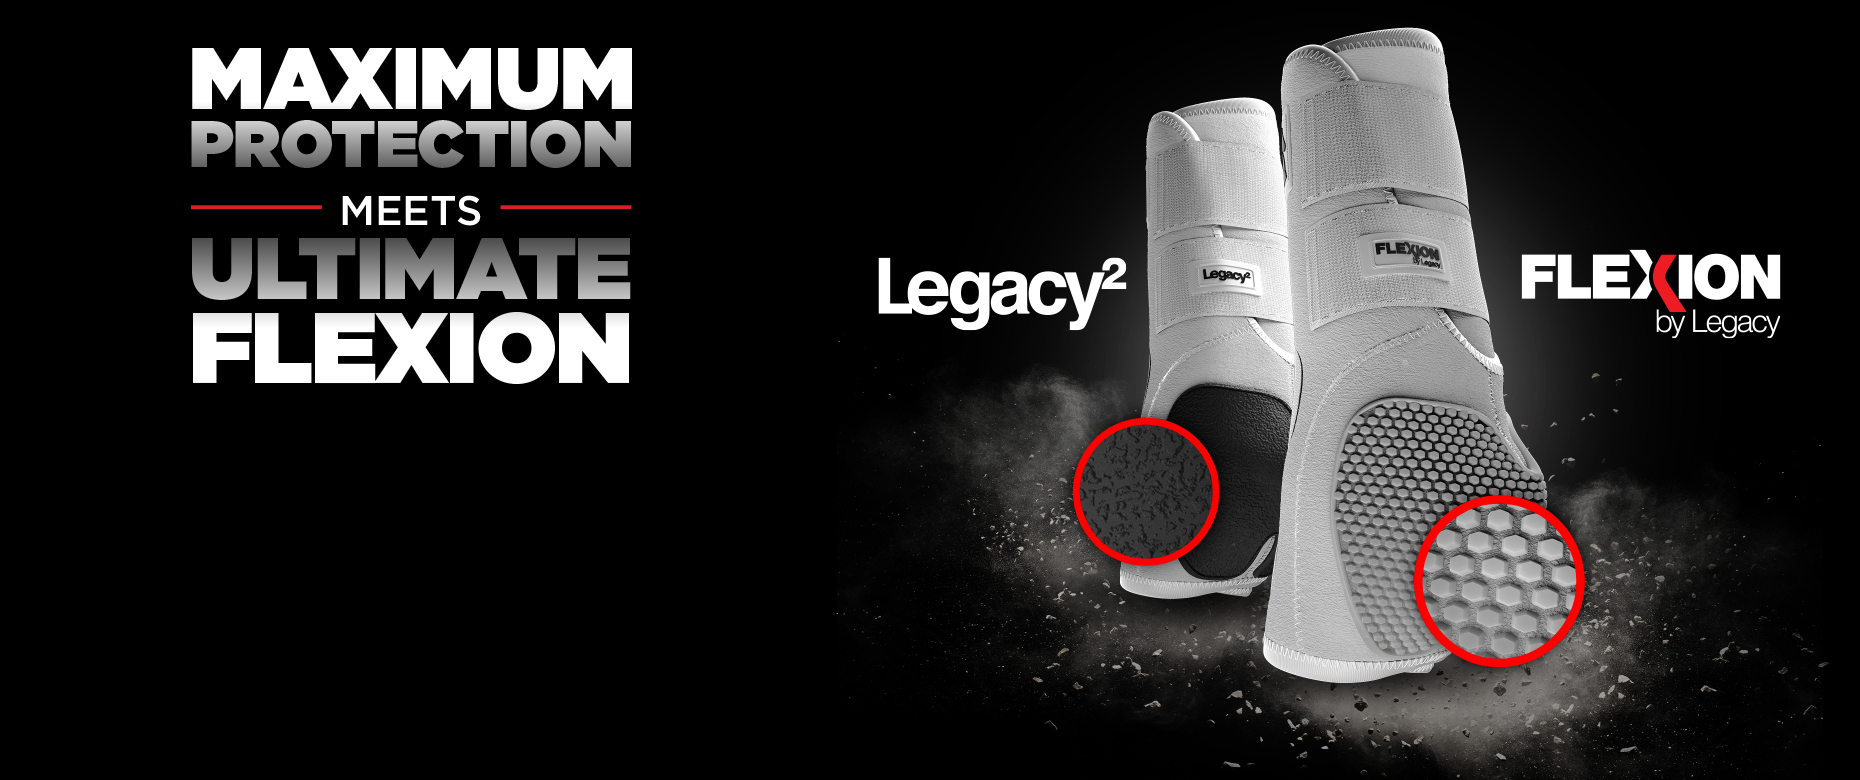 The Flexion by Legacy uses Flexion technology to provide maximum protection and support to horses legs